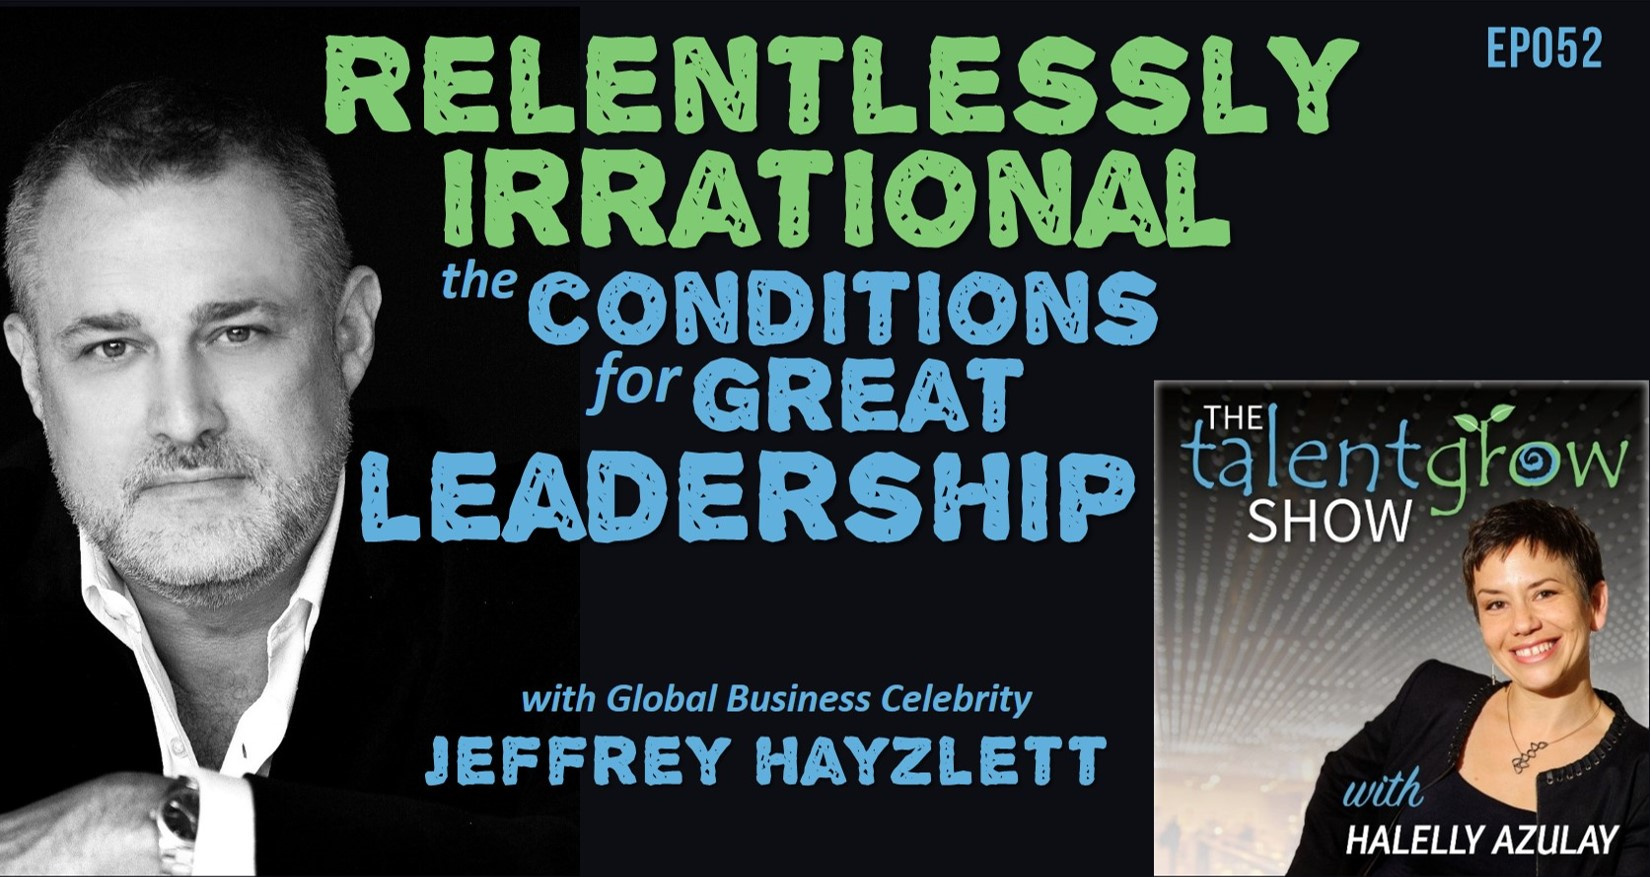 Relentlessly irrational the conditions for great leadership with global business celebrity Jeffrey Hayzlett on the TalentGrow Show podcast with Halelly Azulay